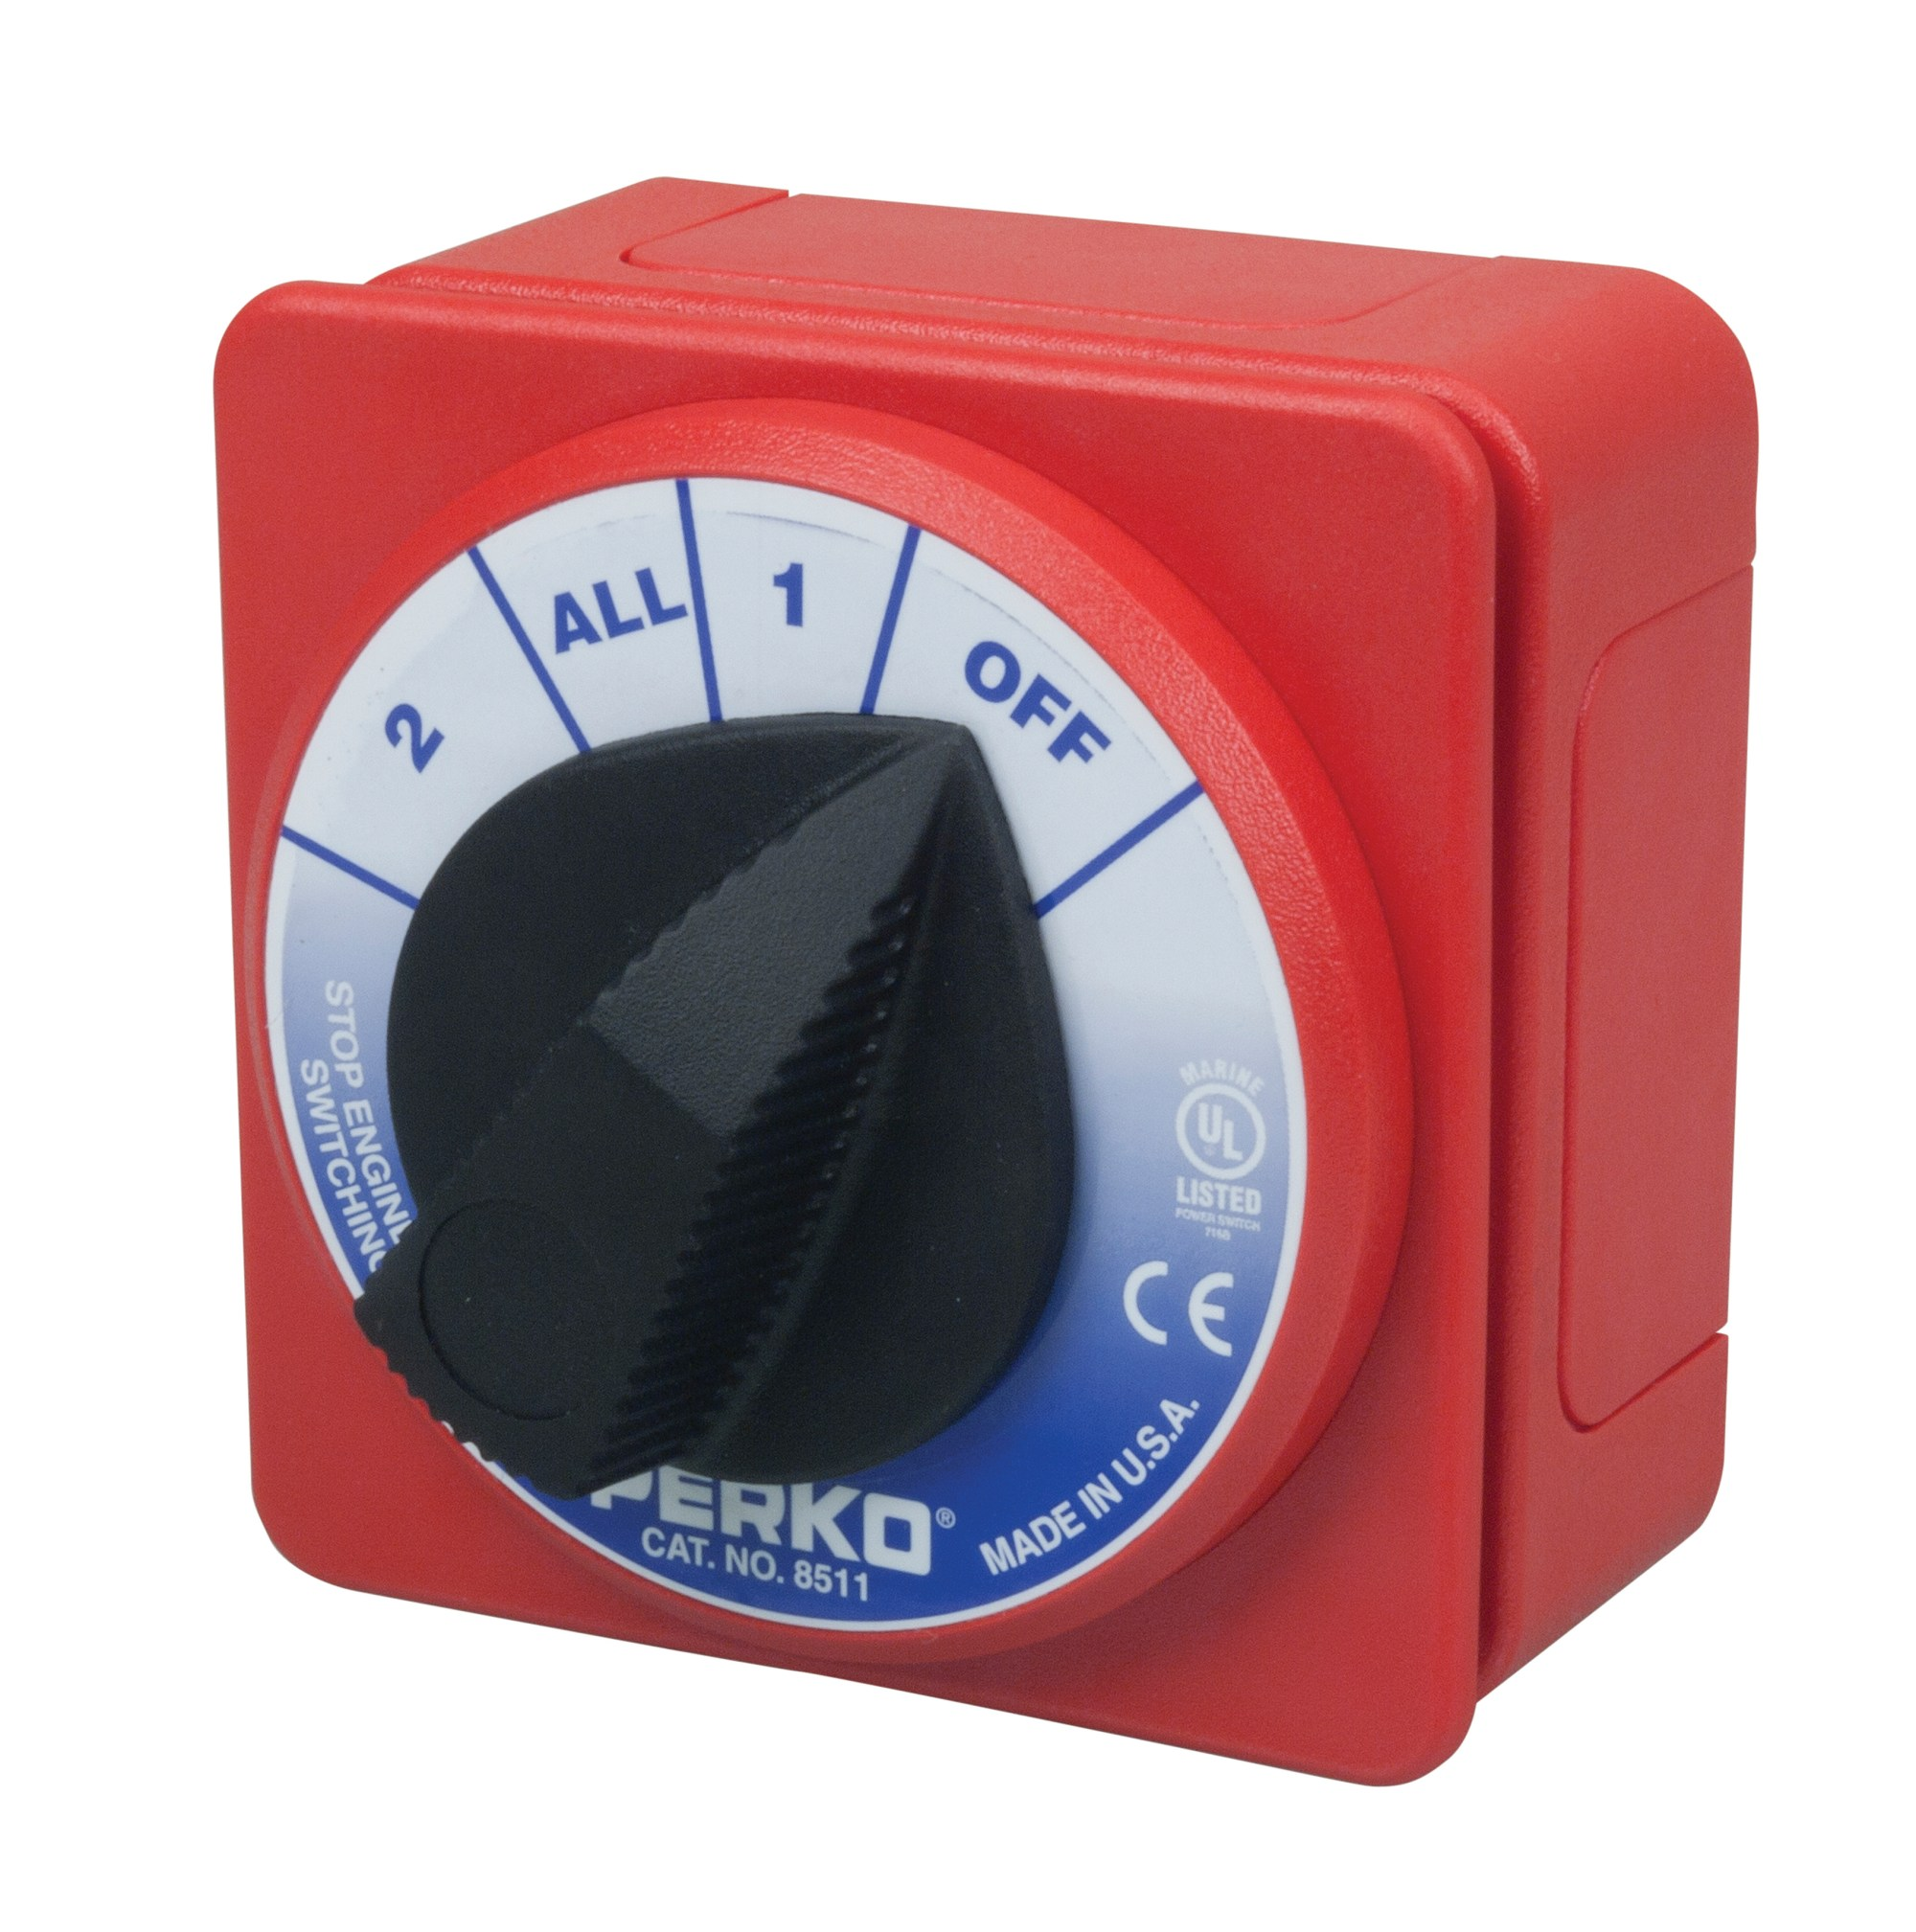 hight resolution of perko inc catalog battery switches compact medium duty battery selector switch 8511